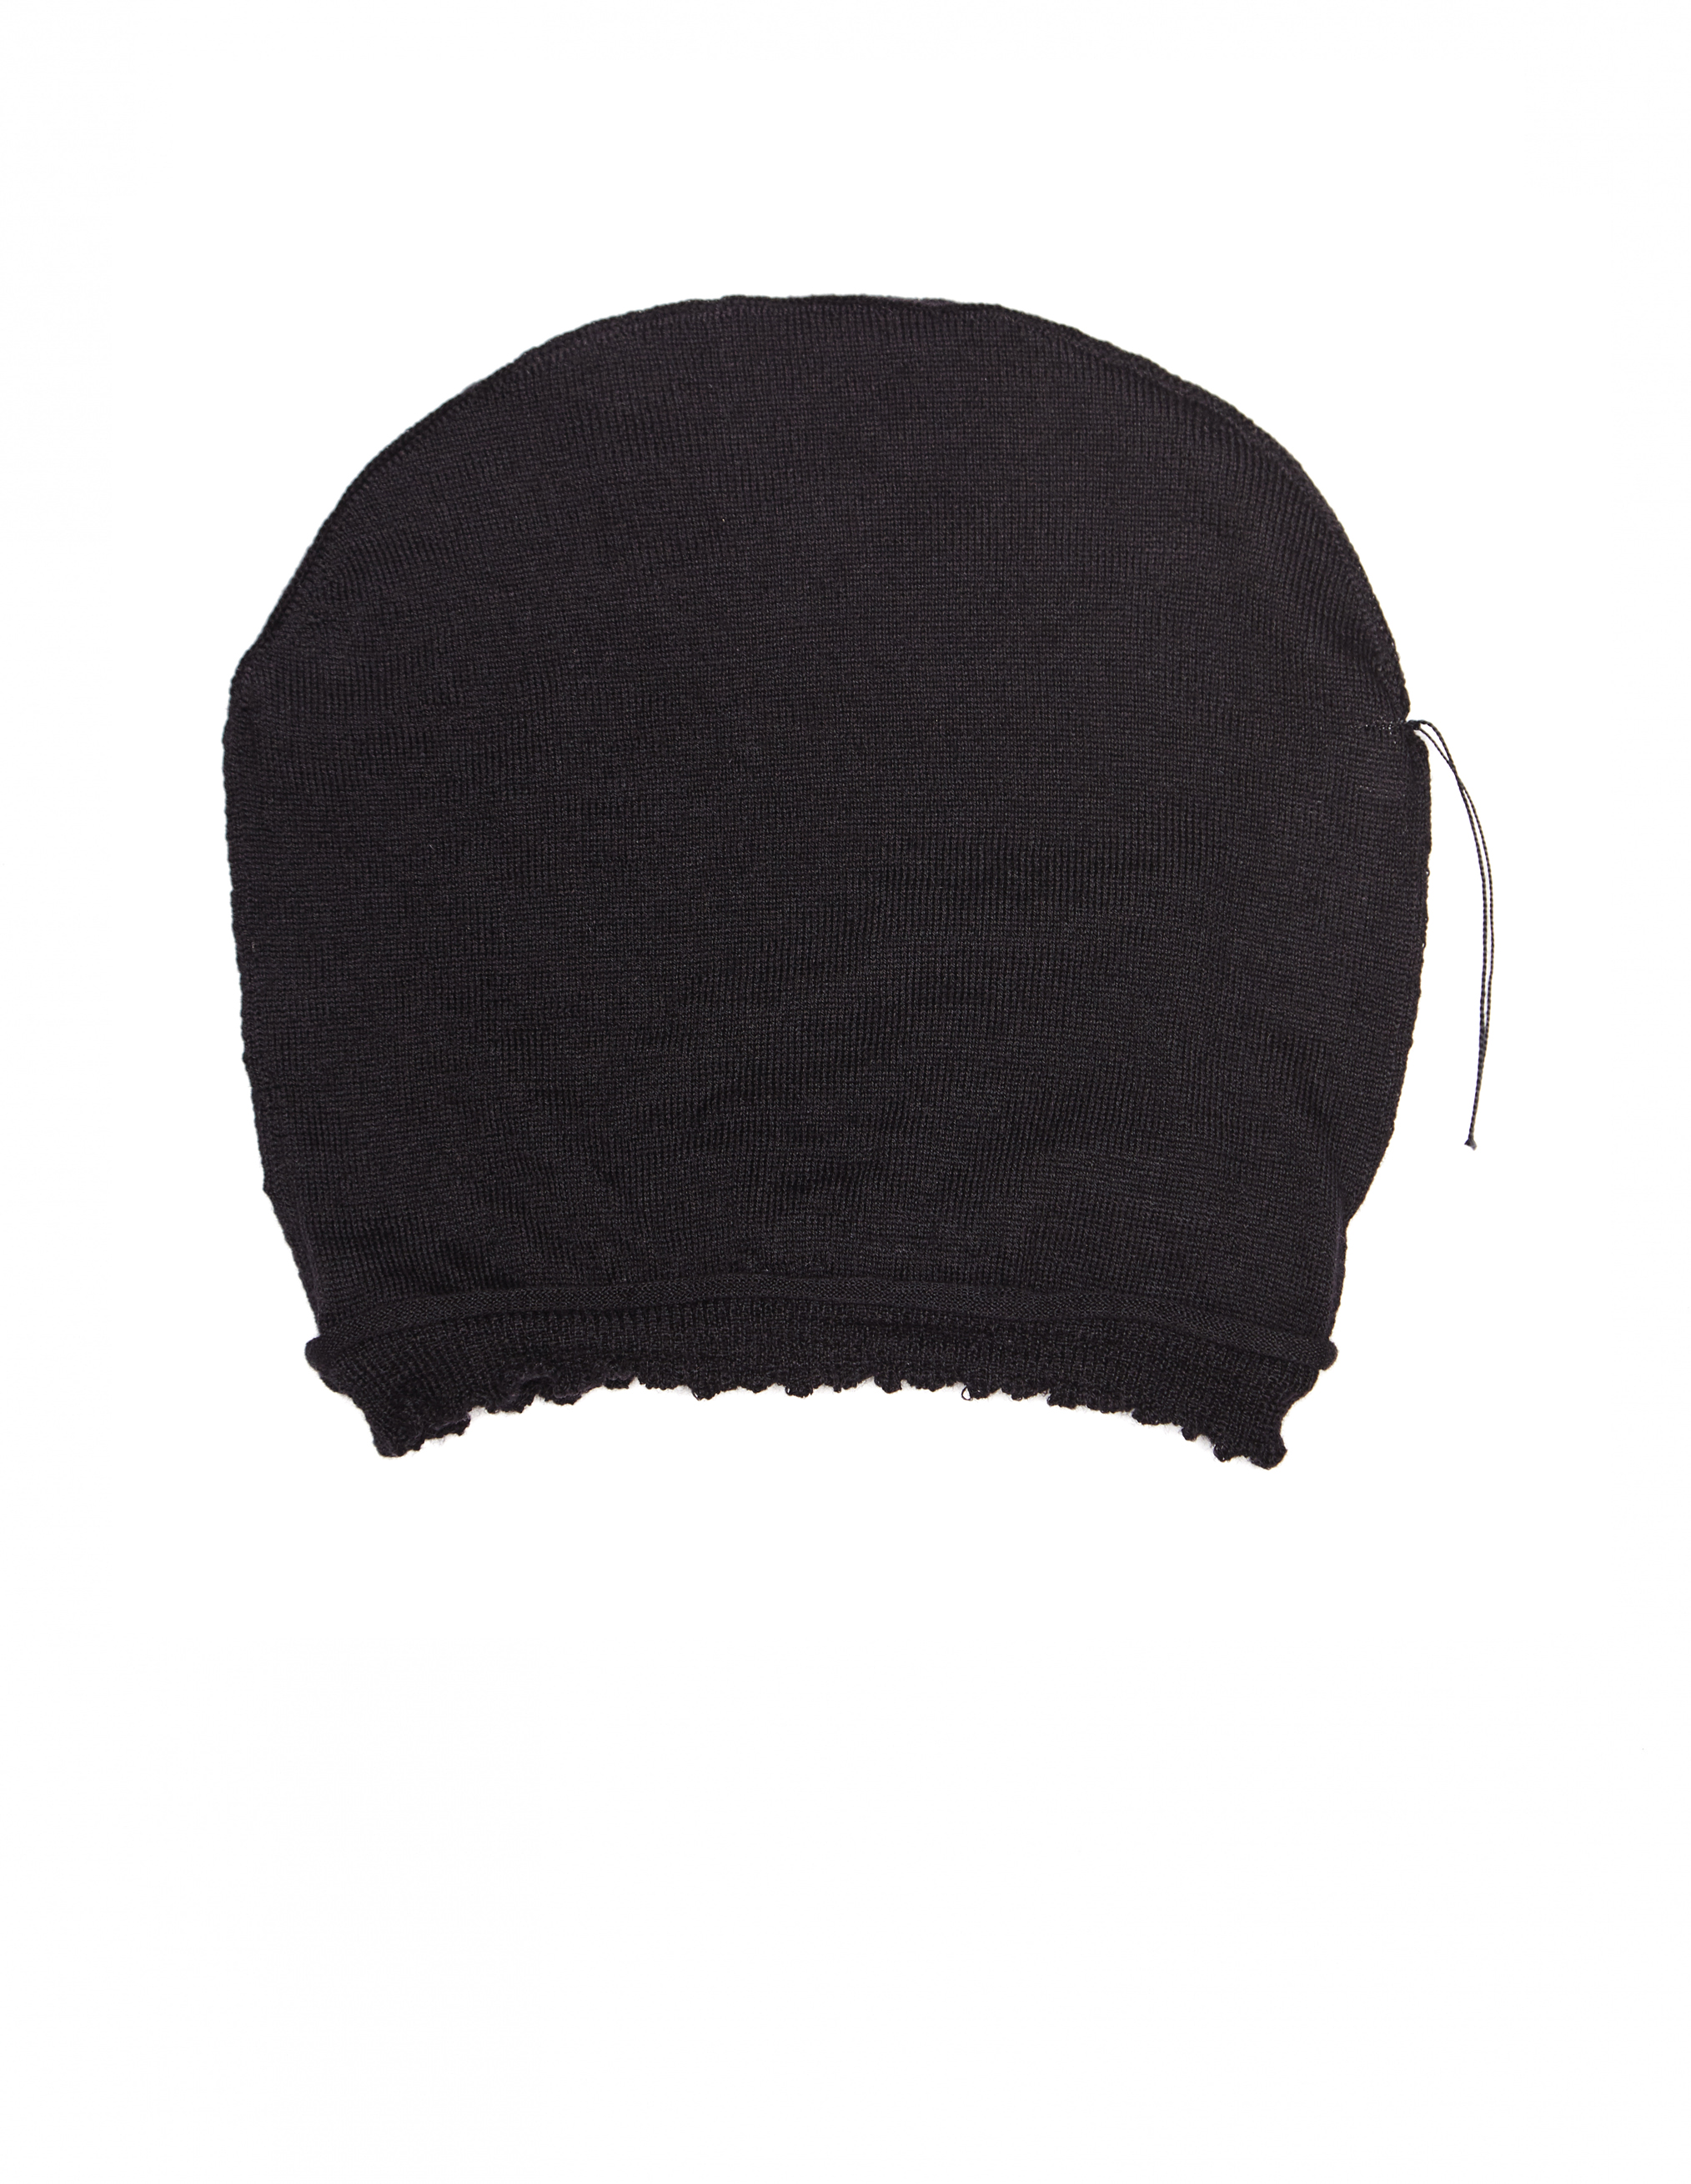 Photo - Wool beanie by Damir Doma